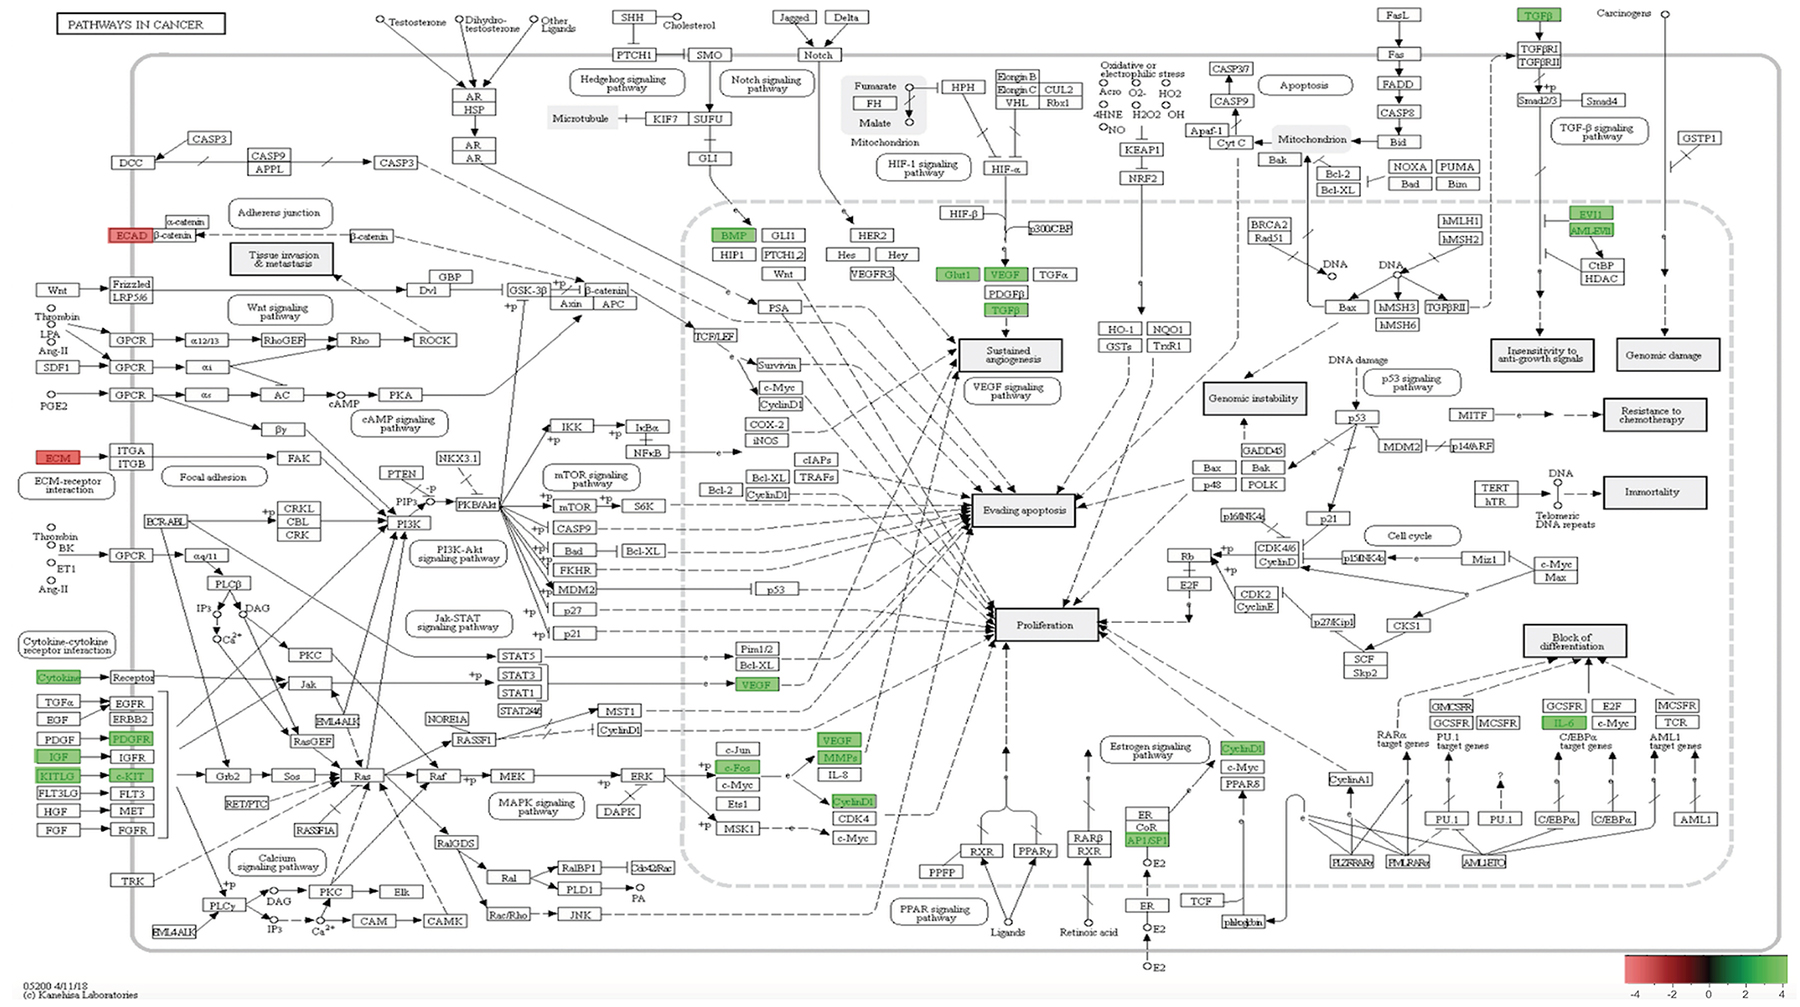 In-vivo 12-week KEGG pathway analysis.